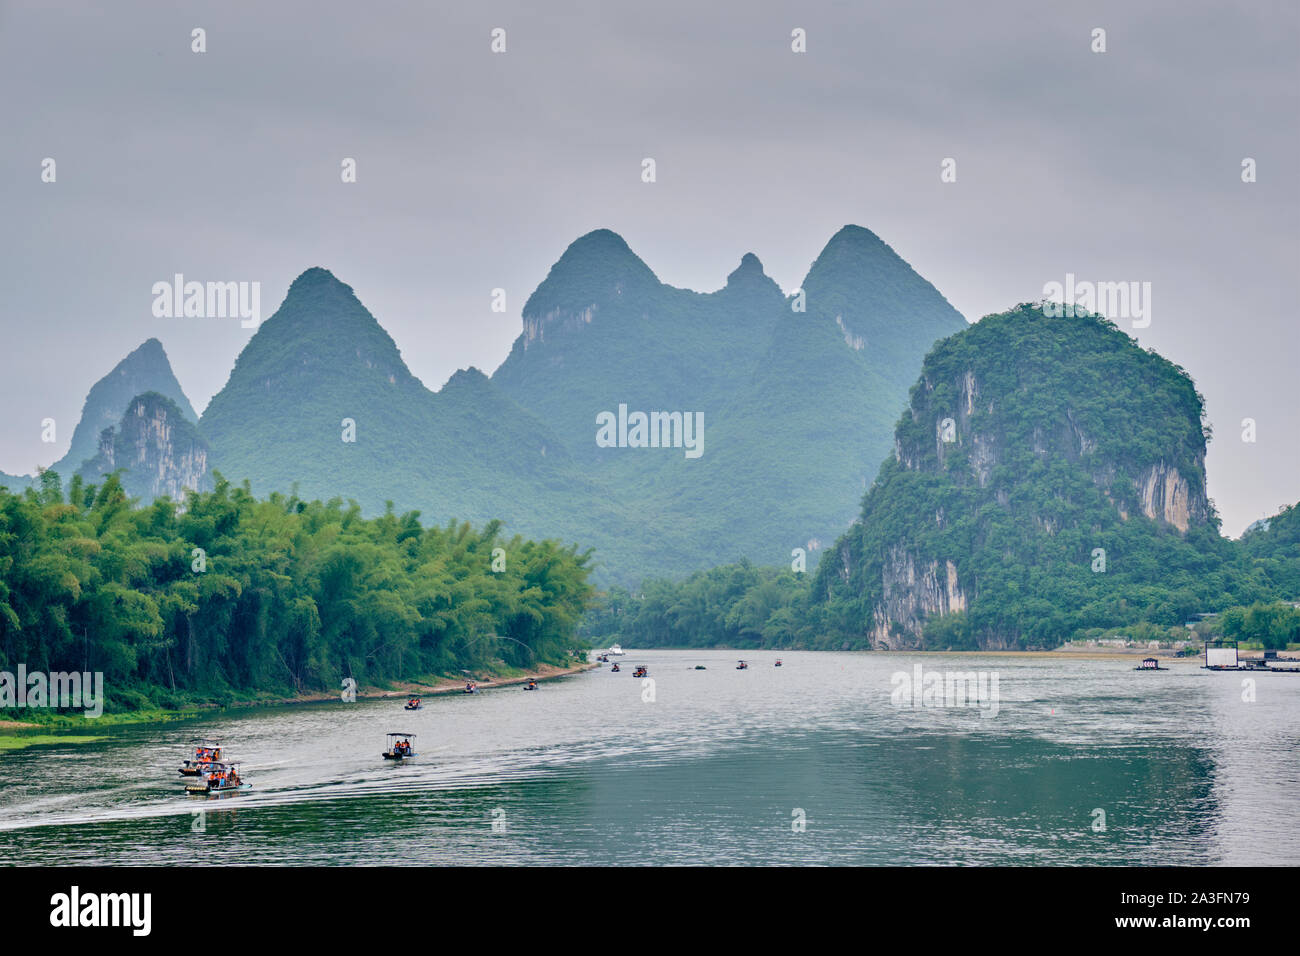 Tourist boats on Li river with carst mountains in the background Stock Photo